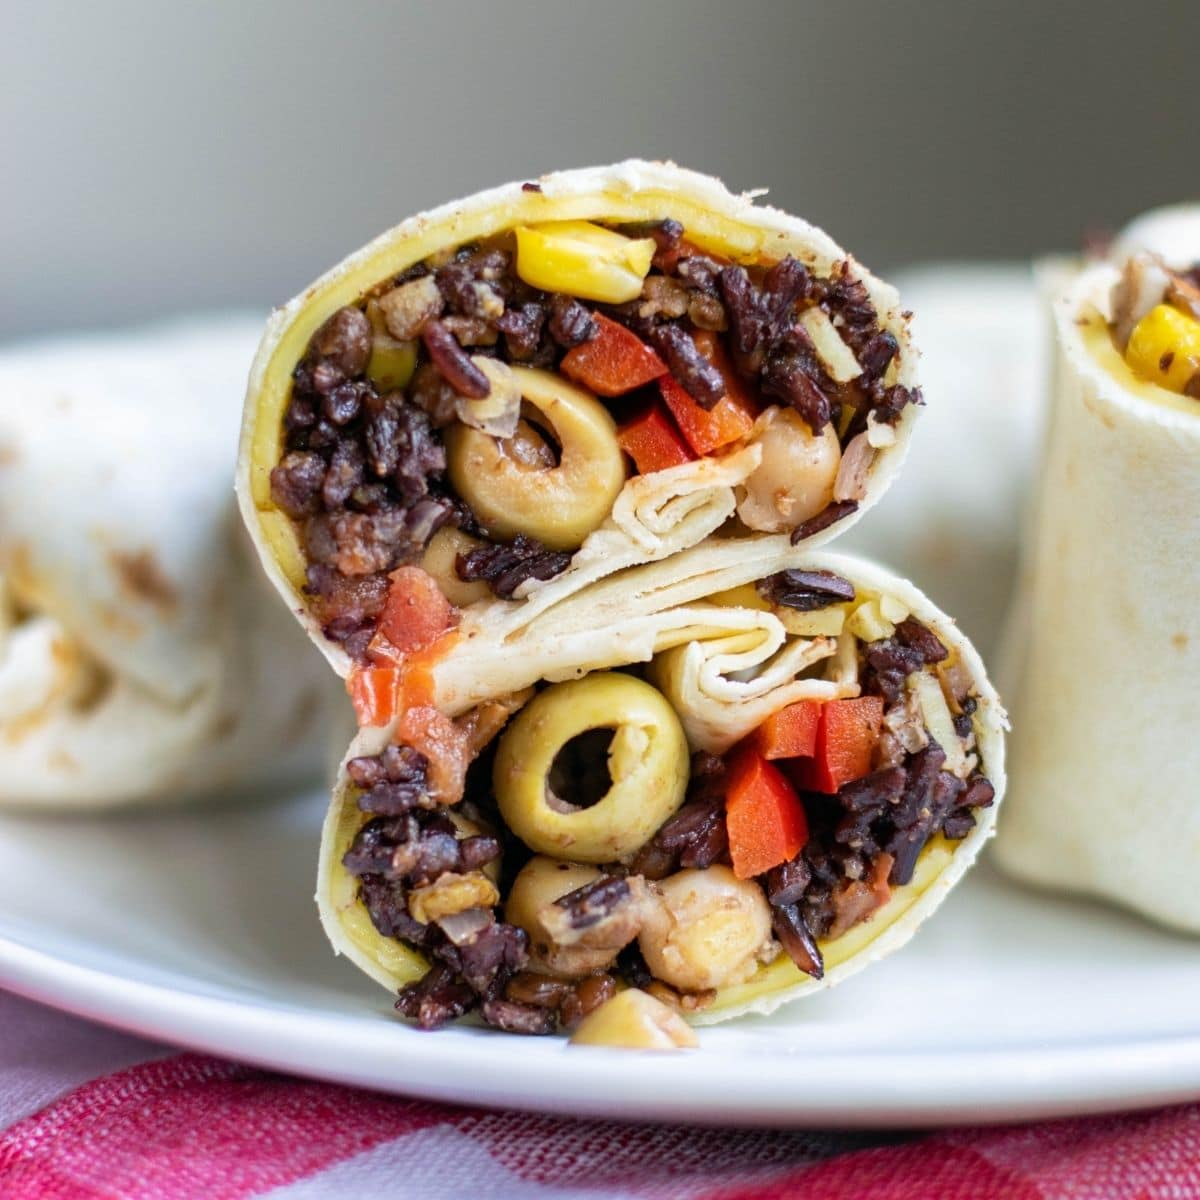 A veggie wrap filled with black rice, olives, tomatoes, and corn.